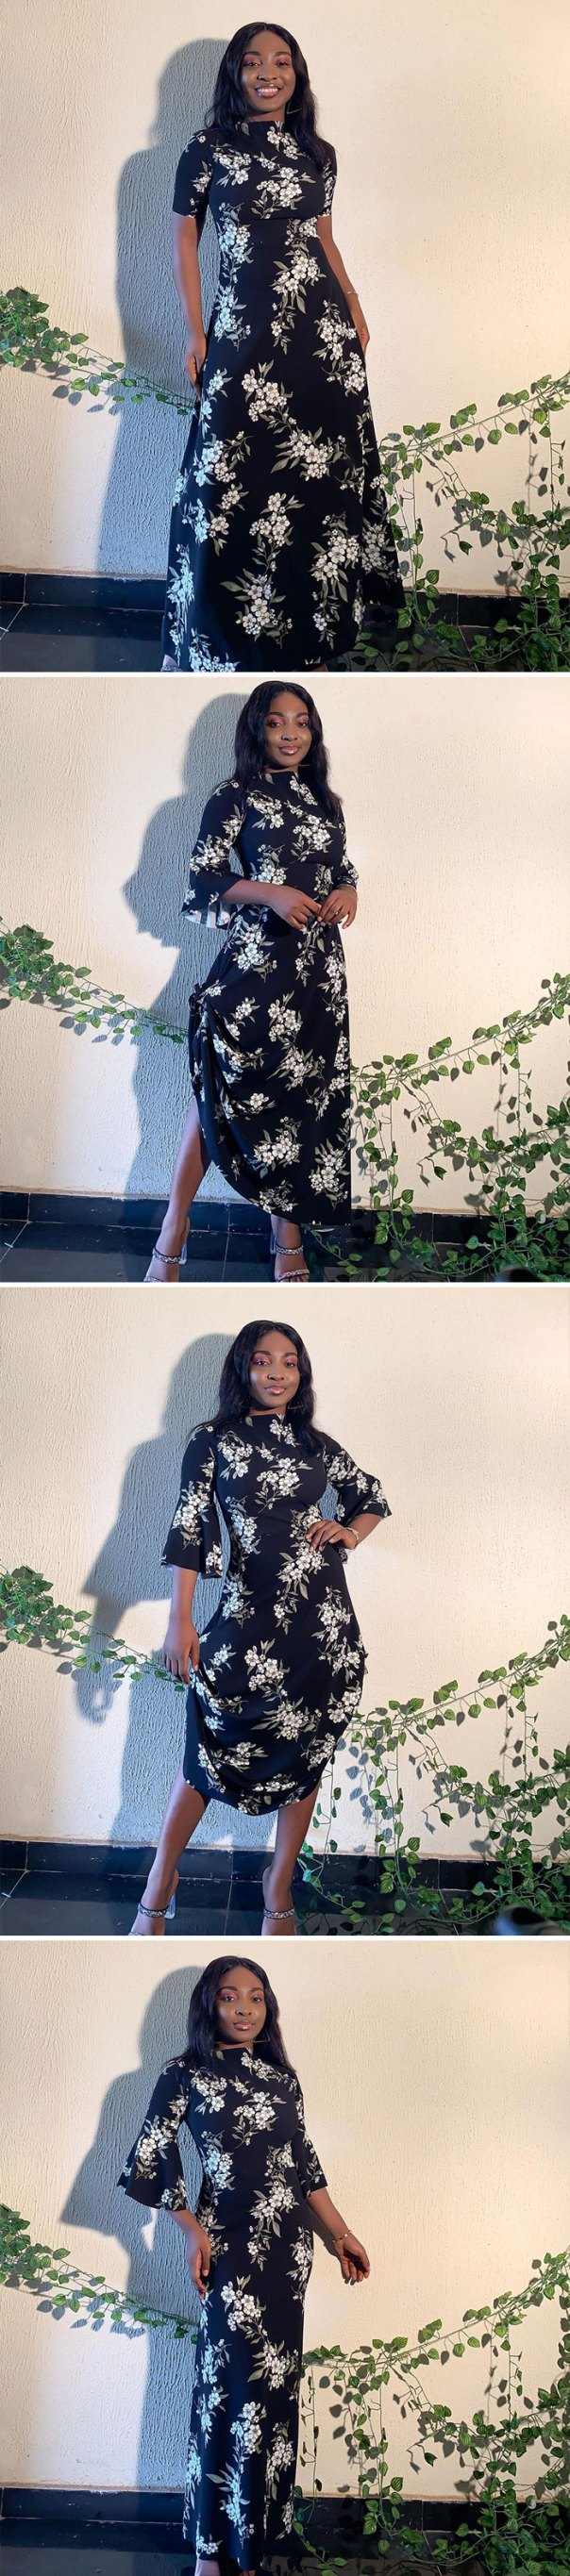 One-Dress-Different-Styles-Oyinda-Akinfenwa